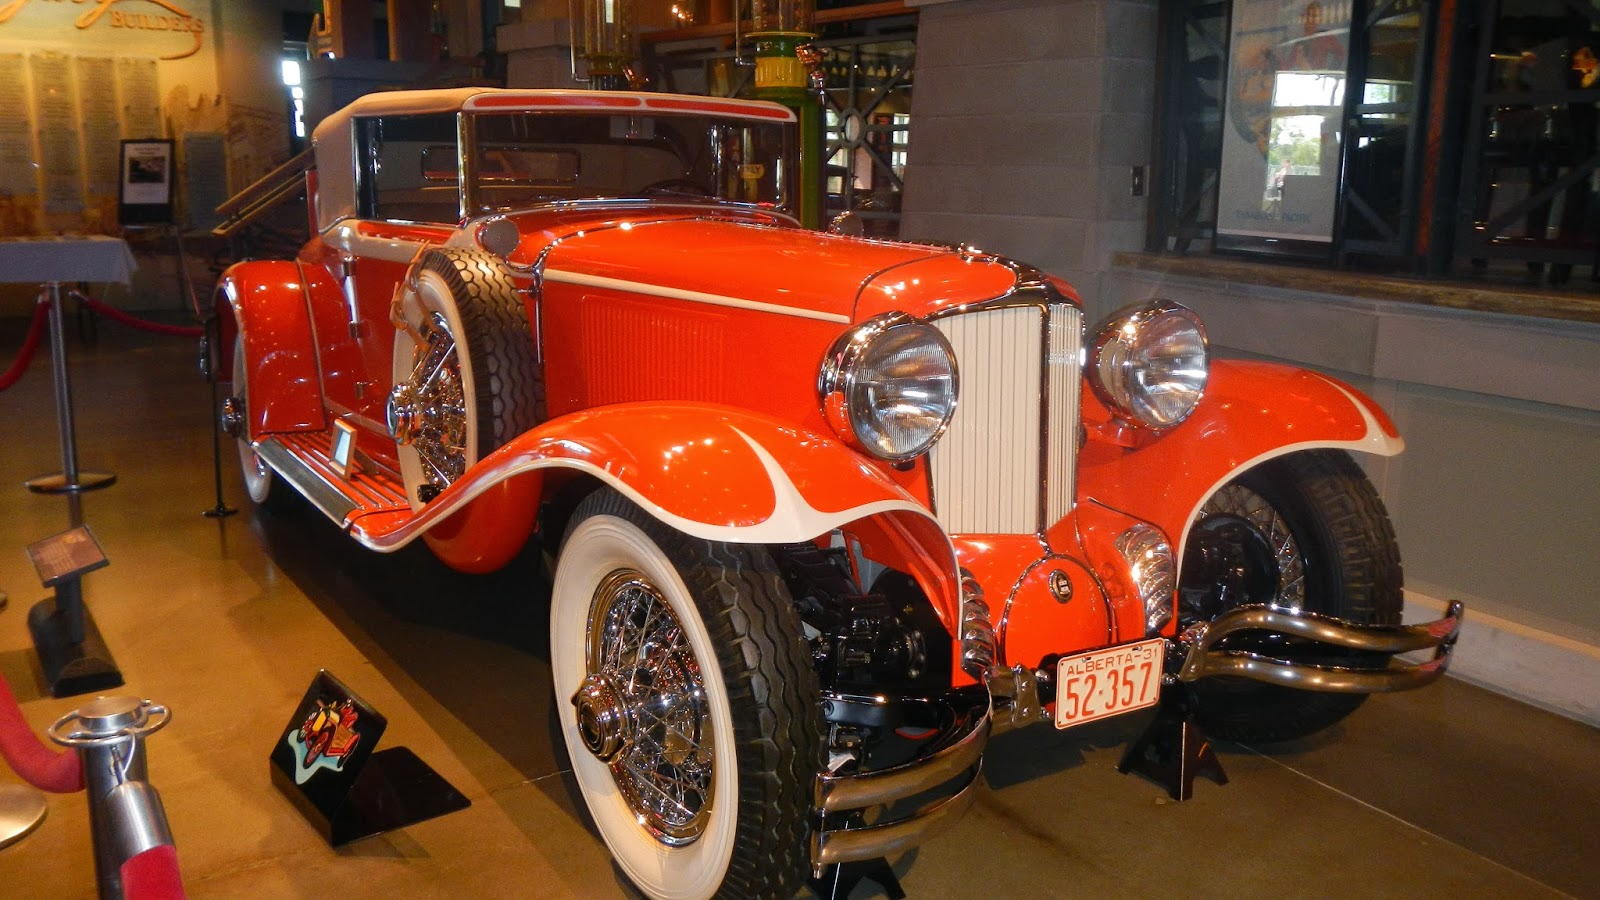 Big Daddy Dave: Gasoline Alley – Autos, Trucks and More! (#2)